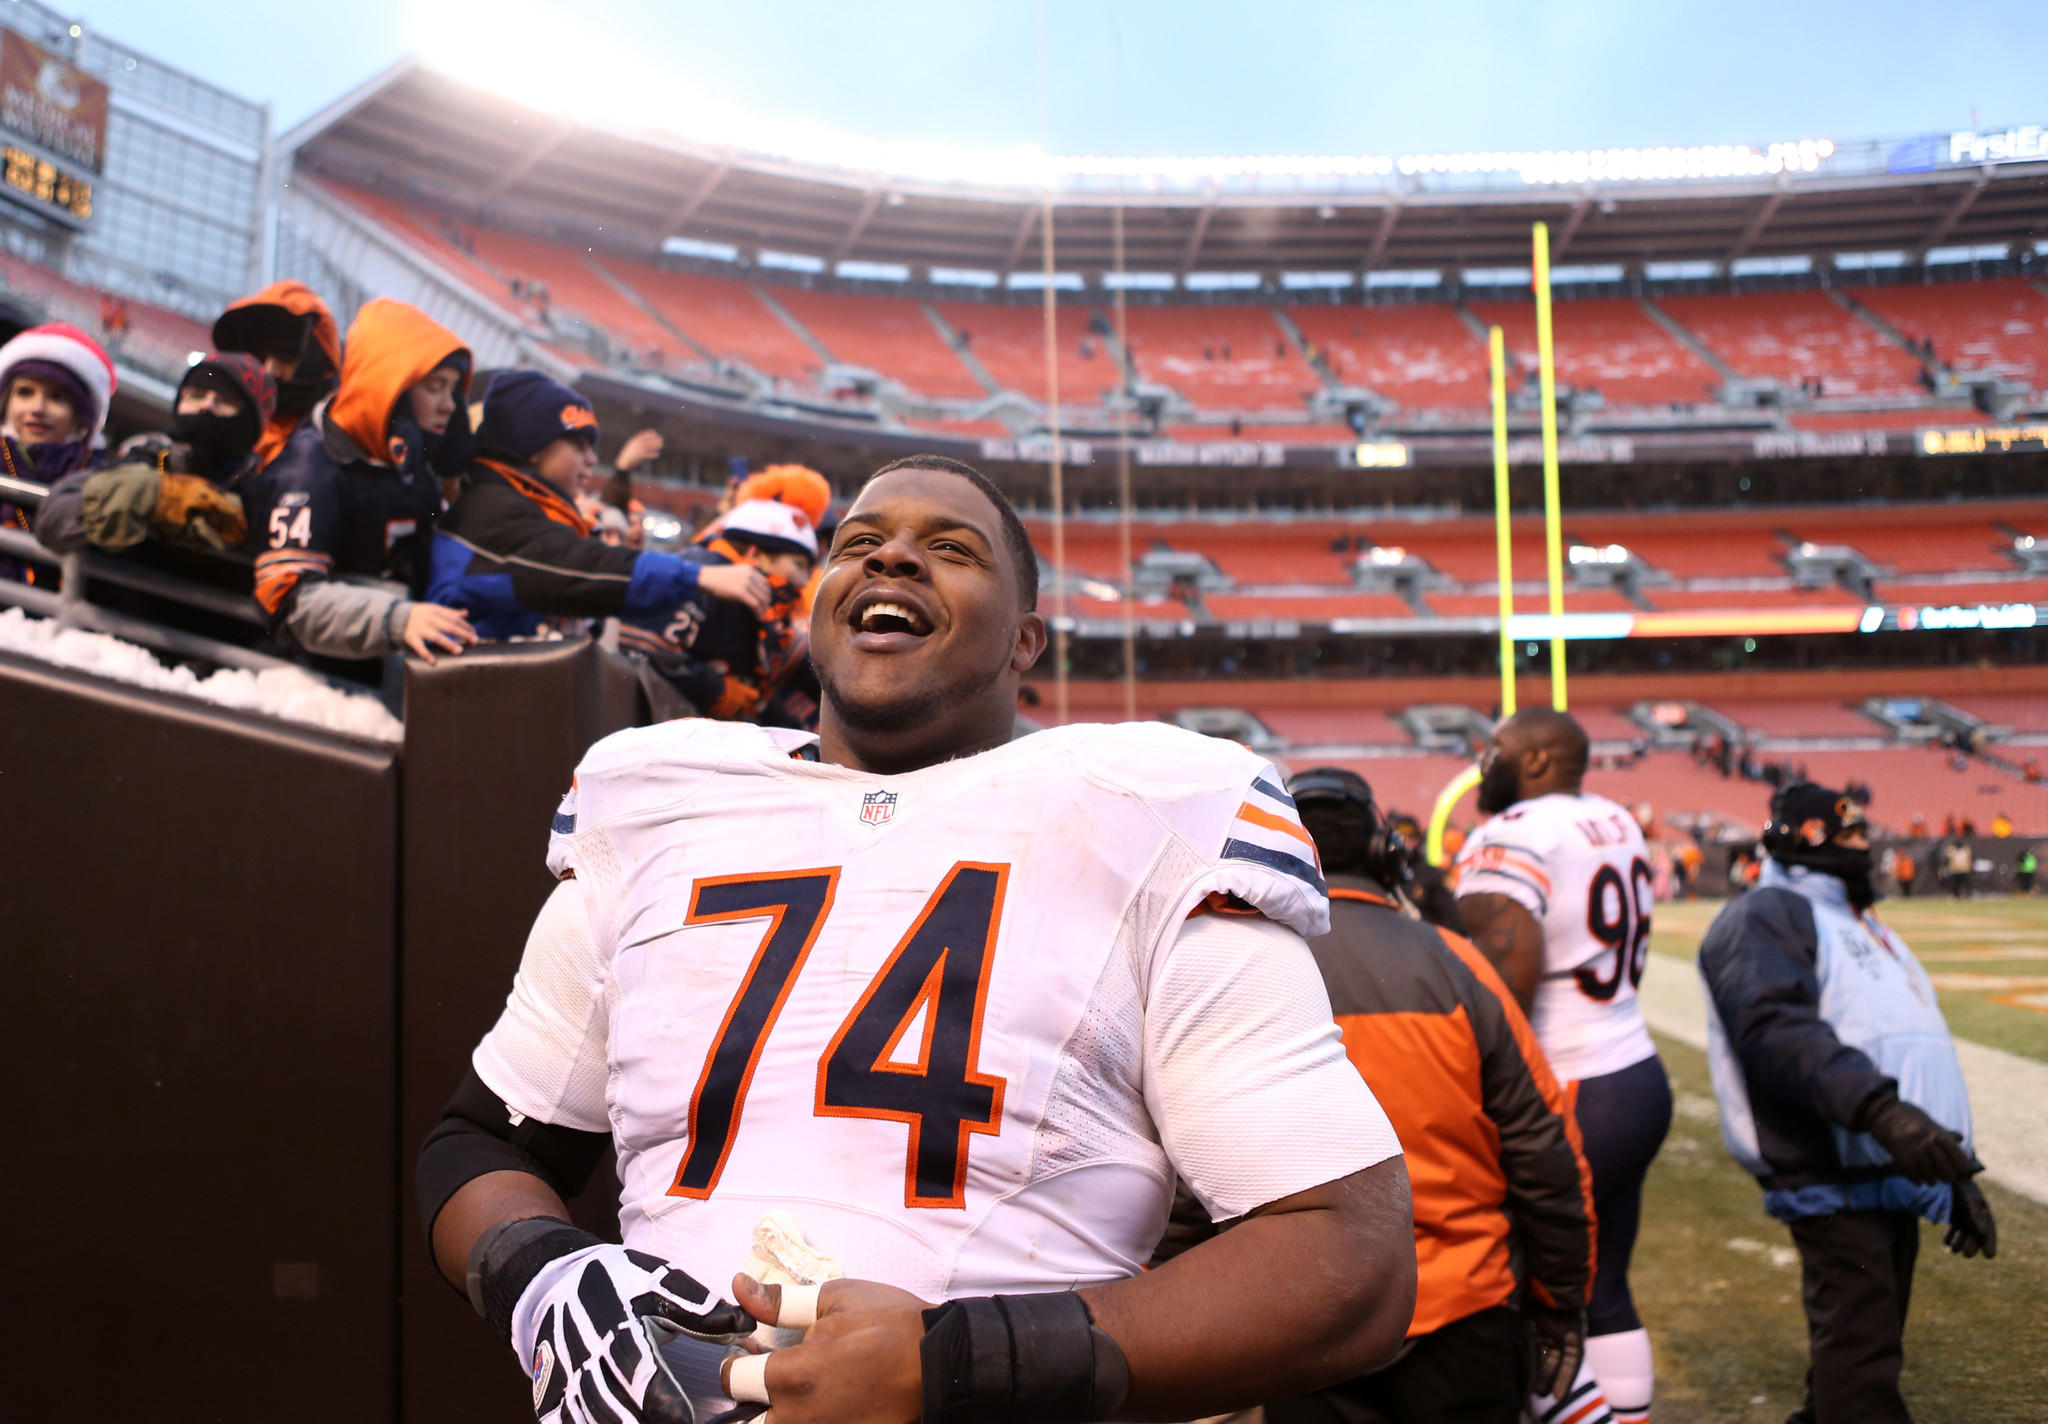 Chicago Bears tackle Jermon Bushrod (74) has a laugh with fans after beating the Cleveland Brows at FirstEnergy Stadium in Cleveland.